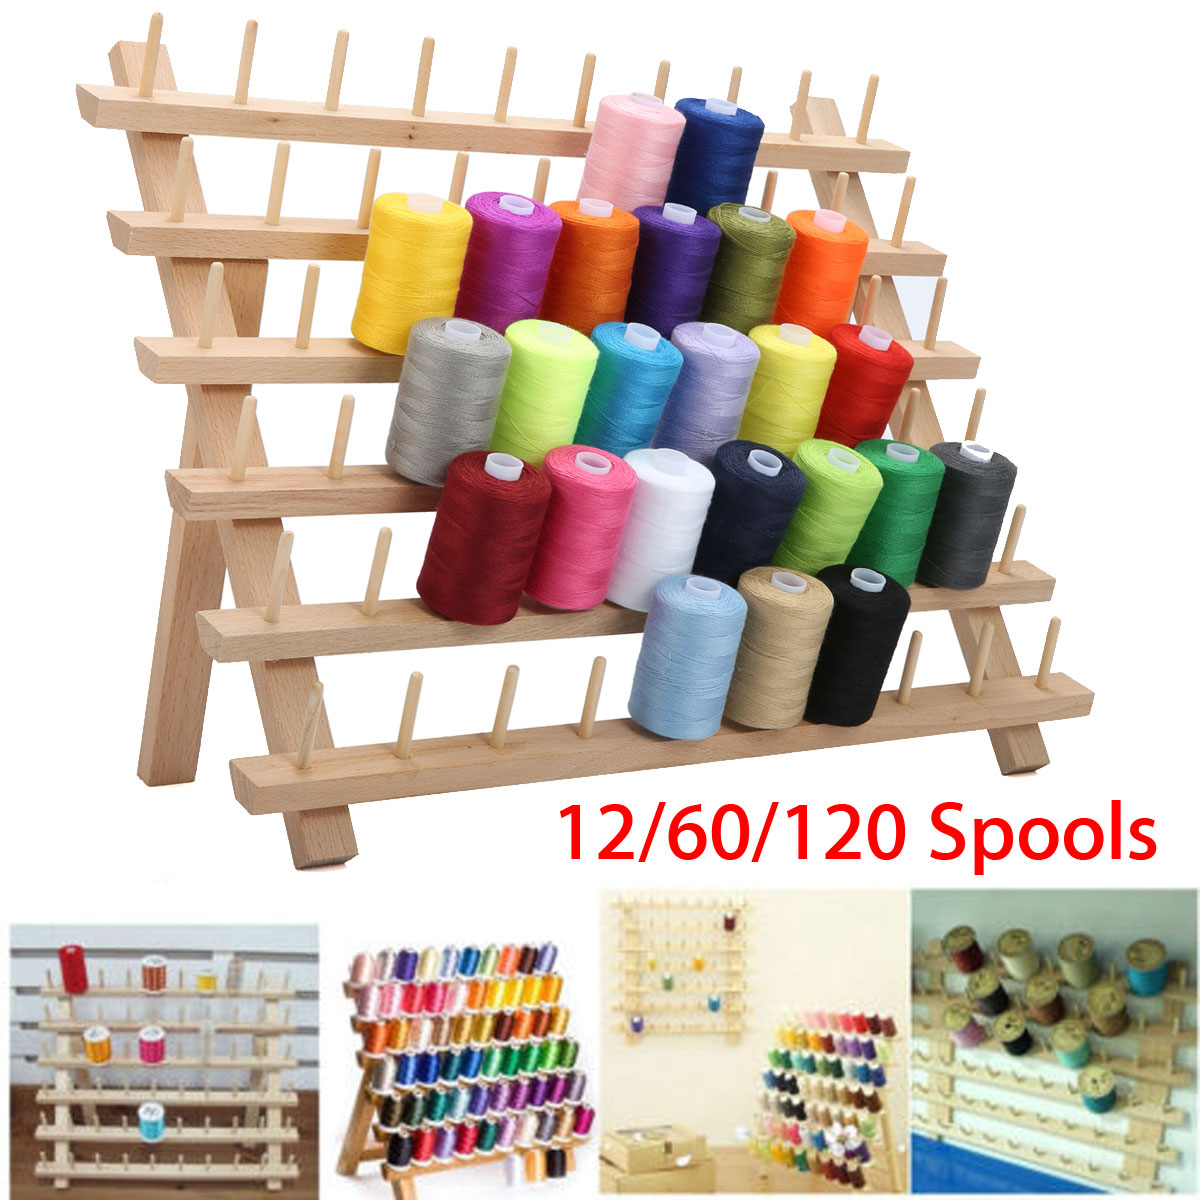 KiWarm 60 Spools Foldable Wood Thread Stand Rack Holds Organizer Wall Mount Cone Embroidery Machine Sewing Storage Holder